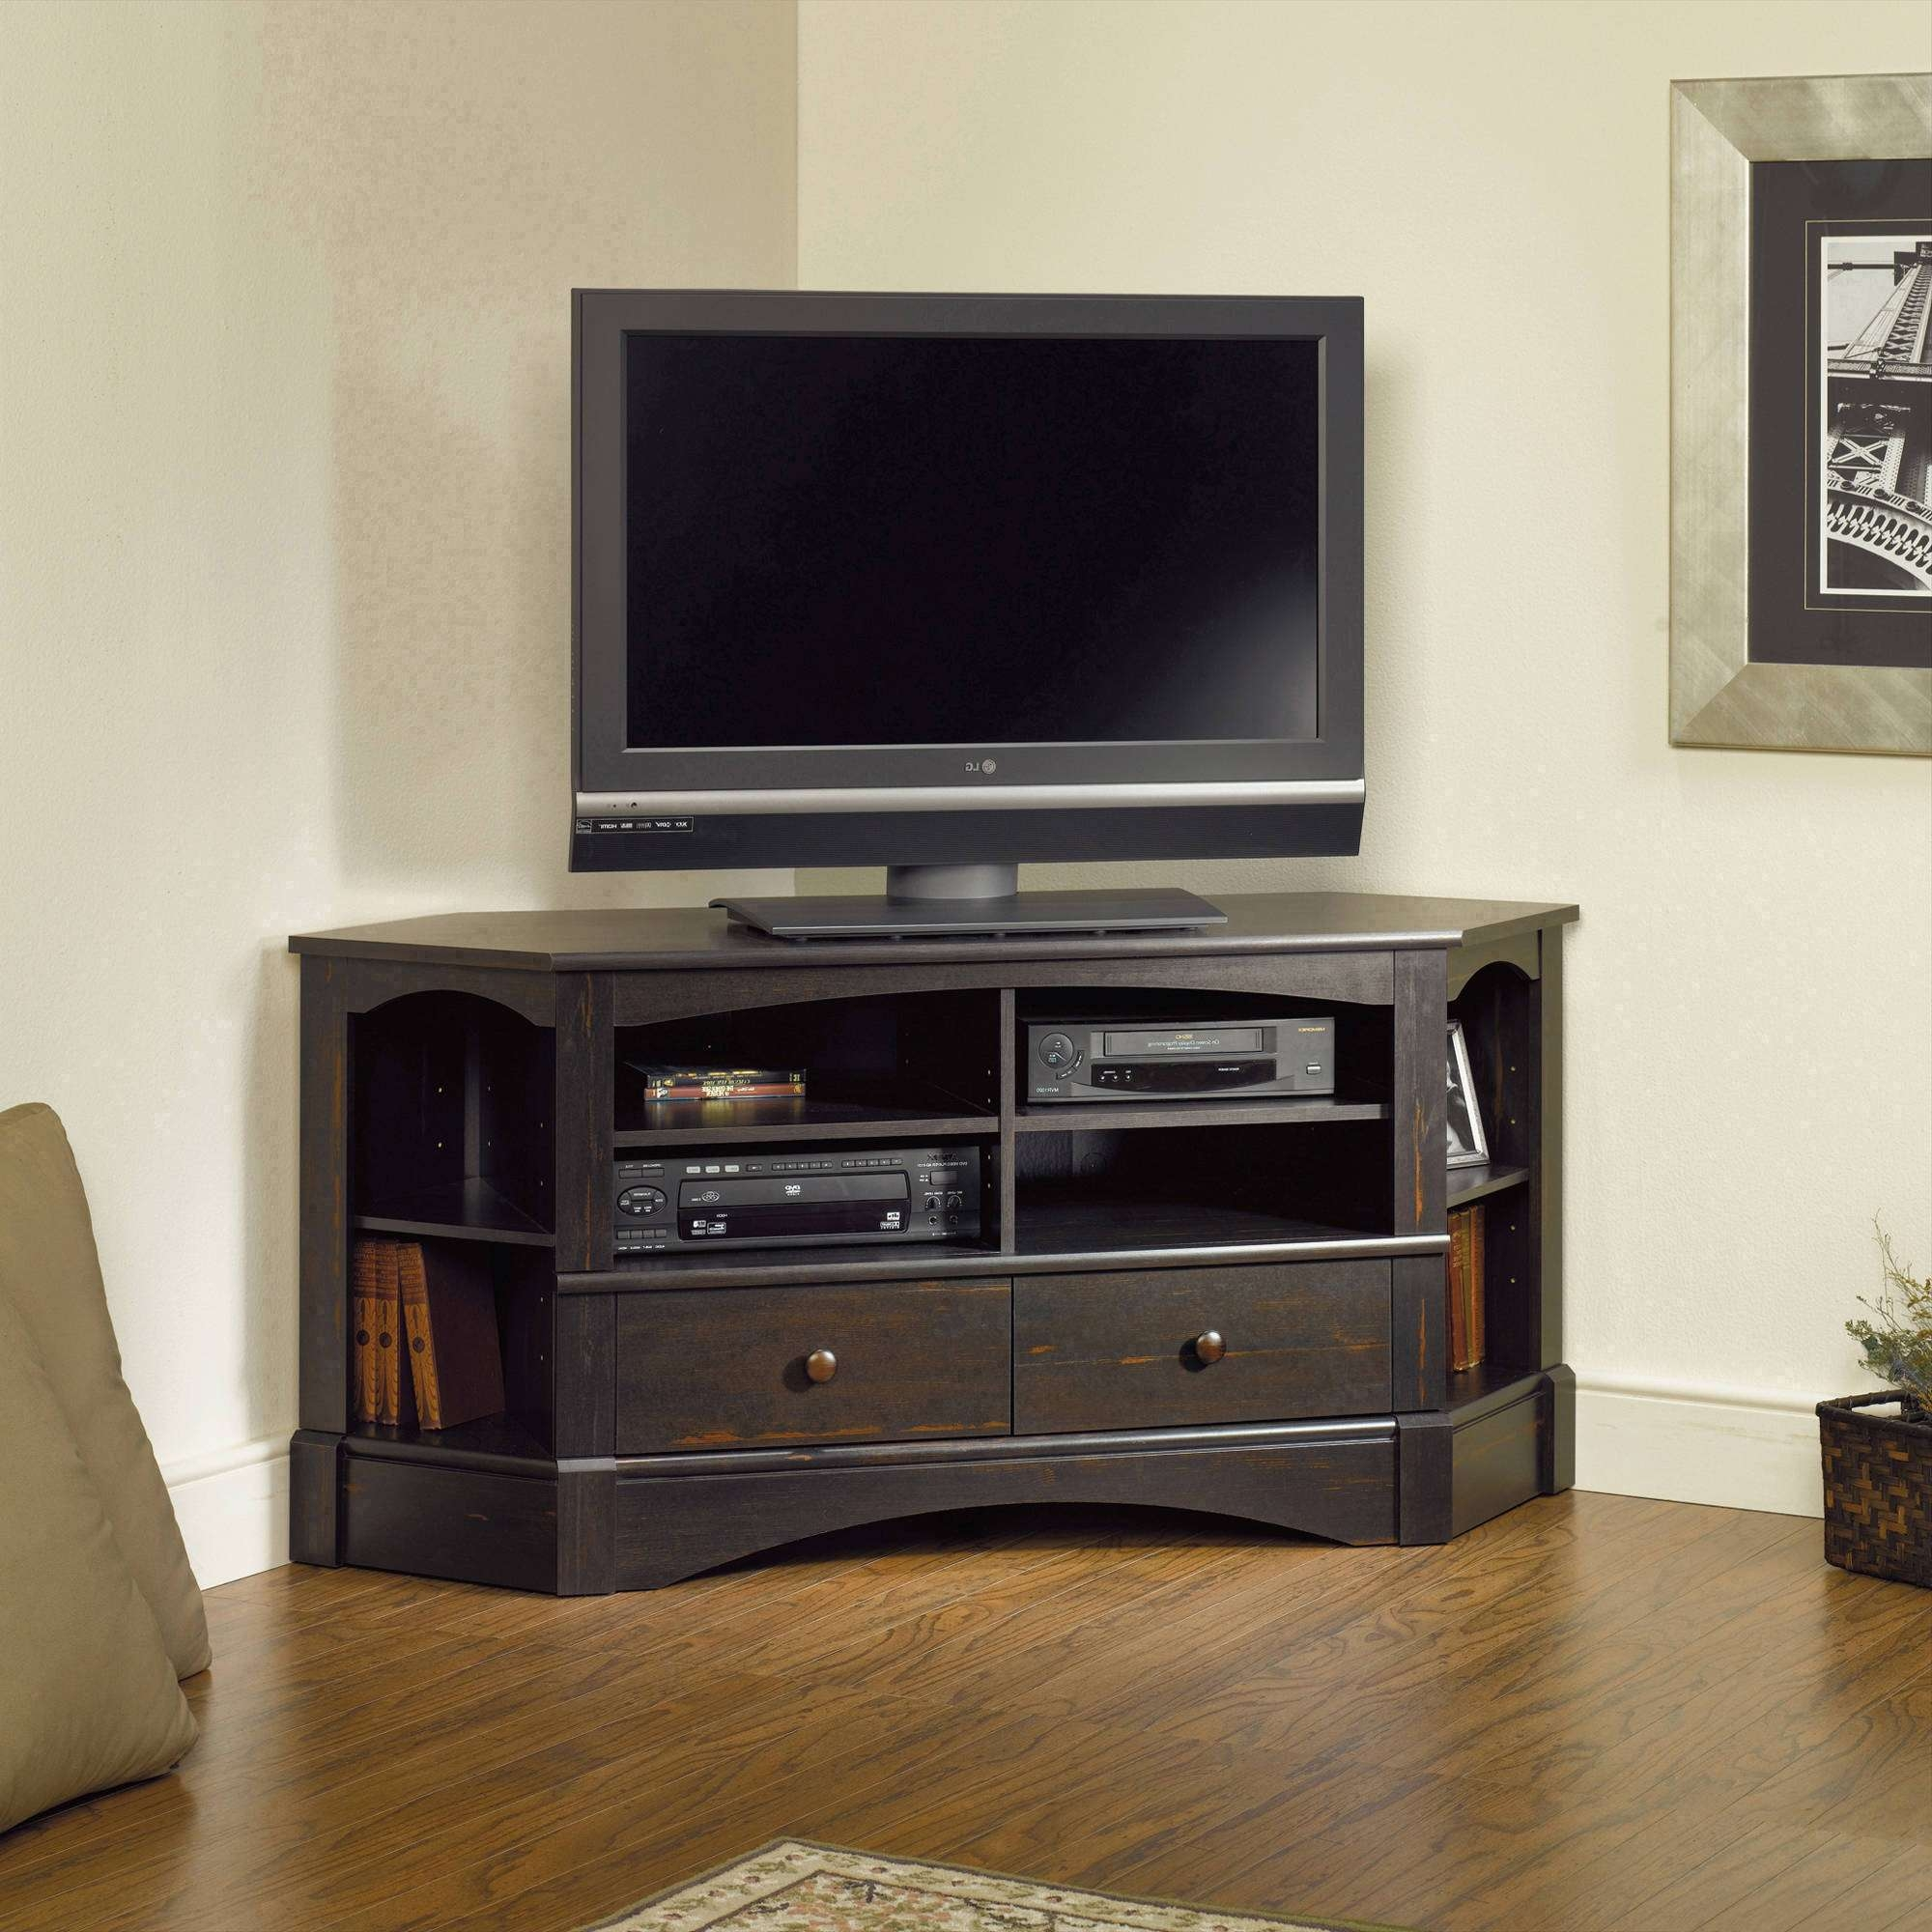 Great Corner Tv Stands For 50 Inch Tv 36 For Home Designing With Corner Tv Stands For 50 Inch Tv (View 9 of 20)